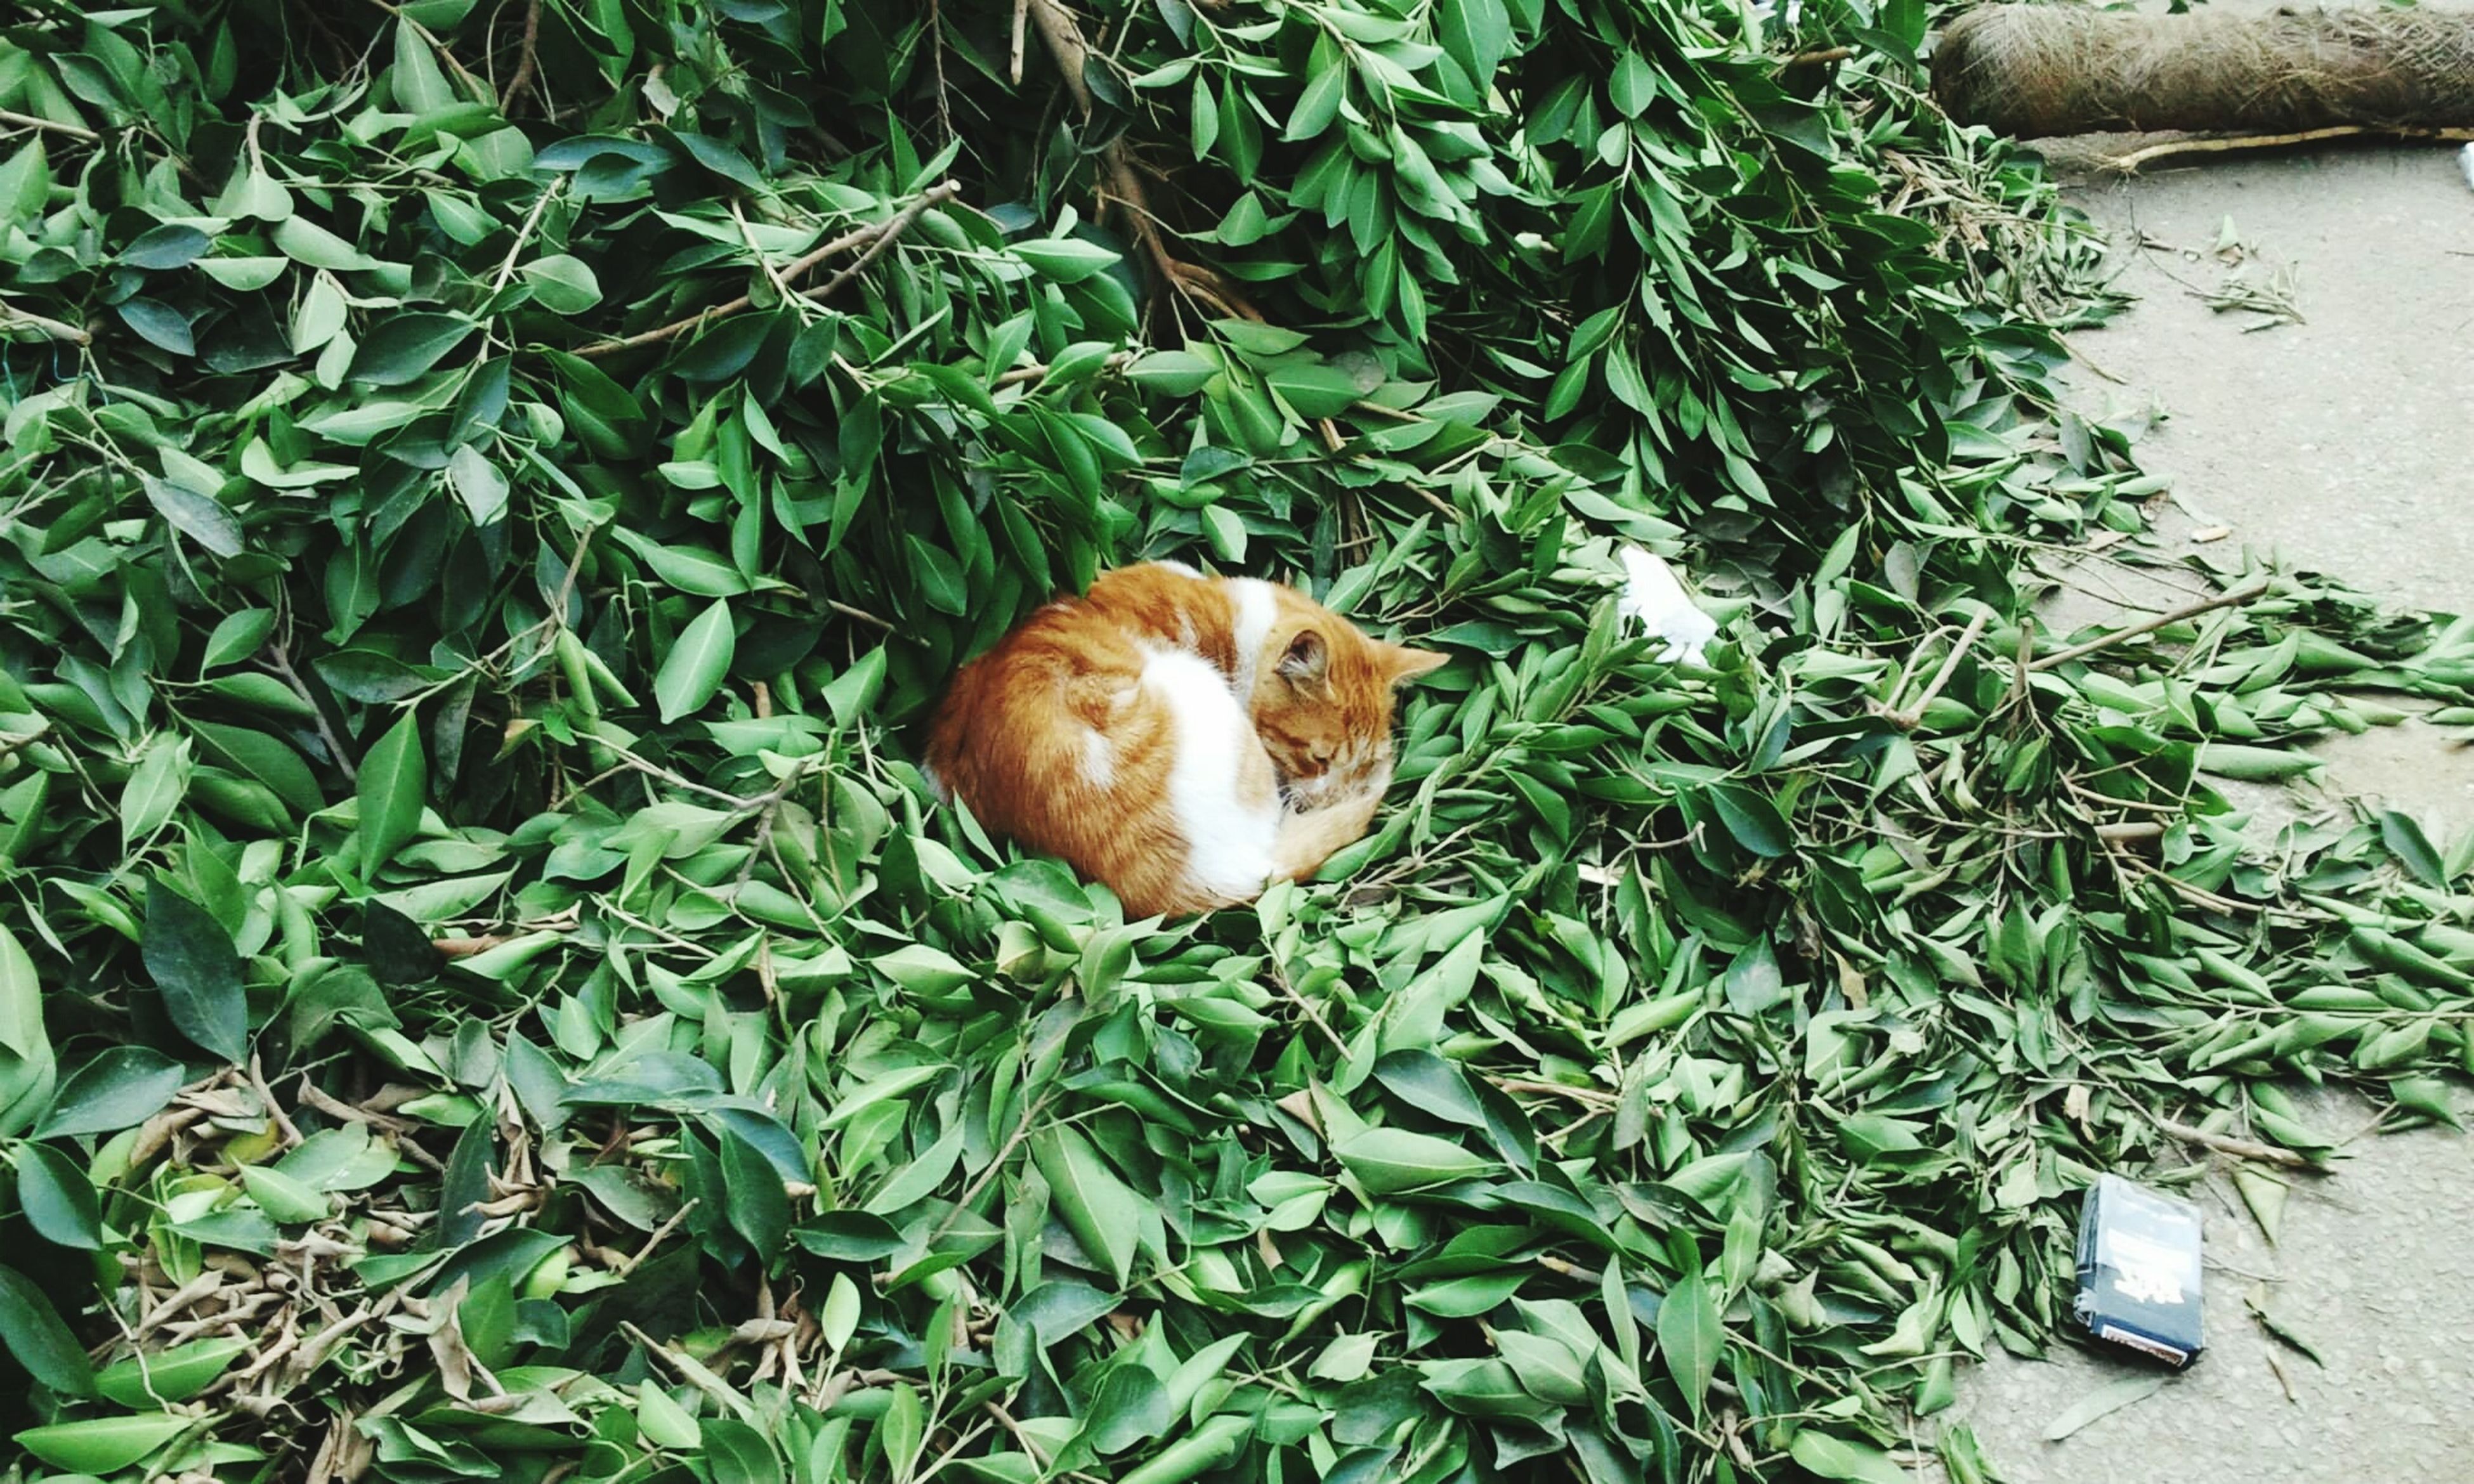 animal themes, one animal, plant, green color, mammal, leaf, pets, growth, domestic animals, high angle view, domestic cat, cat, grass, relaxation, nature, no people, outdoors, day, feline, sunlight